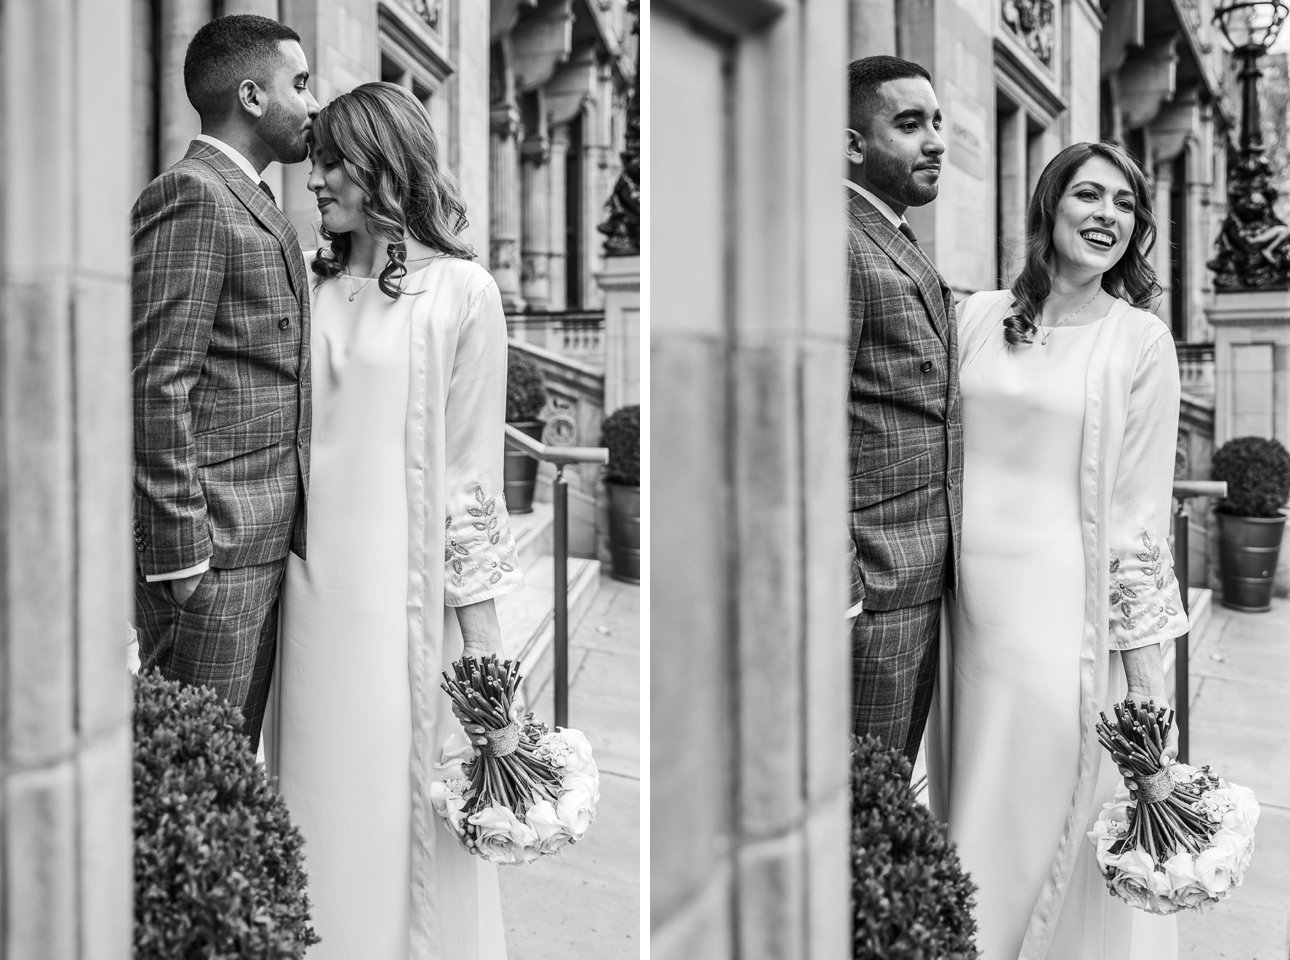 Black and white portraits of a bride and groom on the streets of London in the UK.